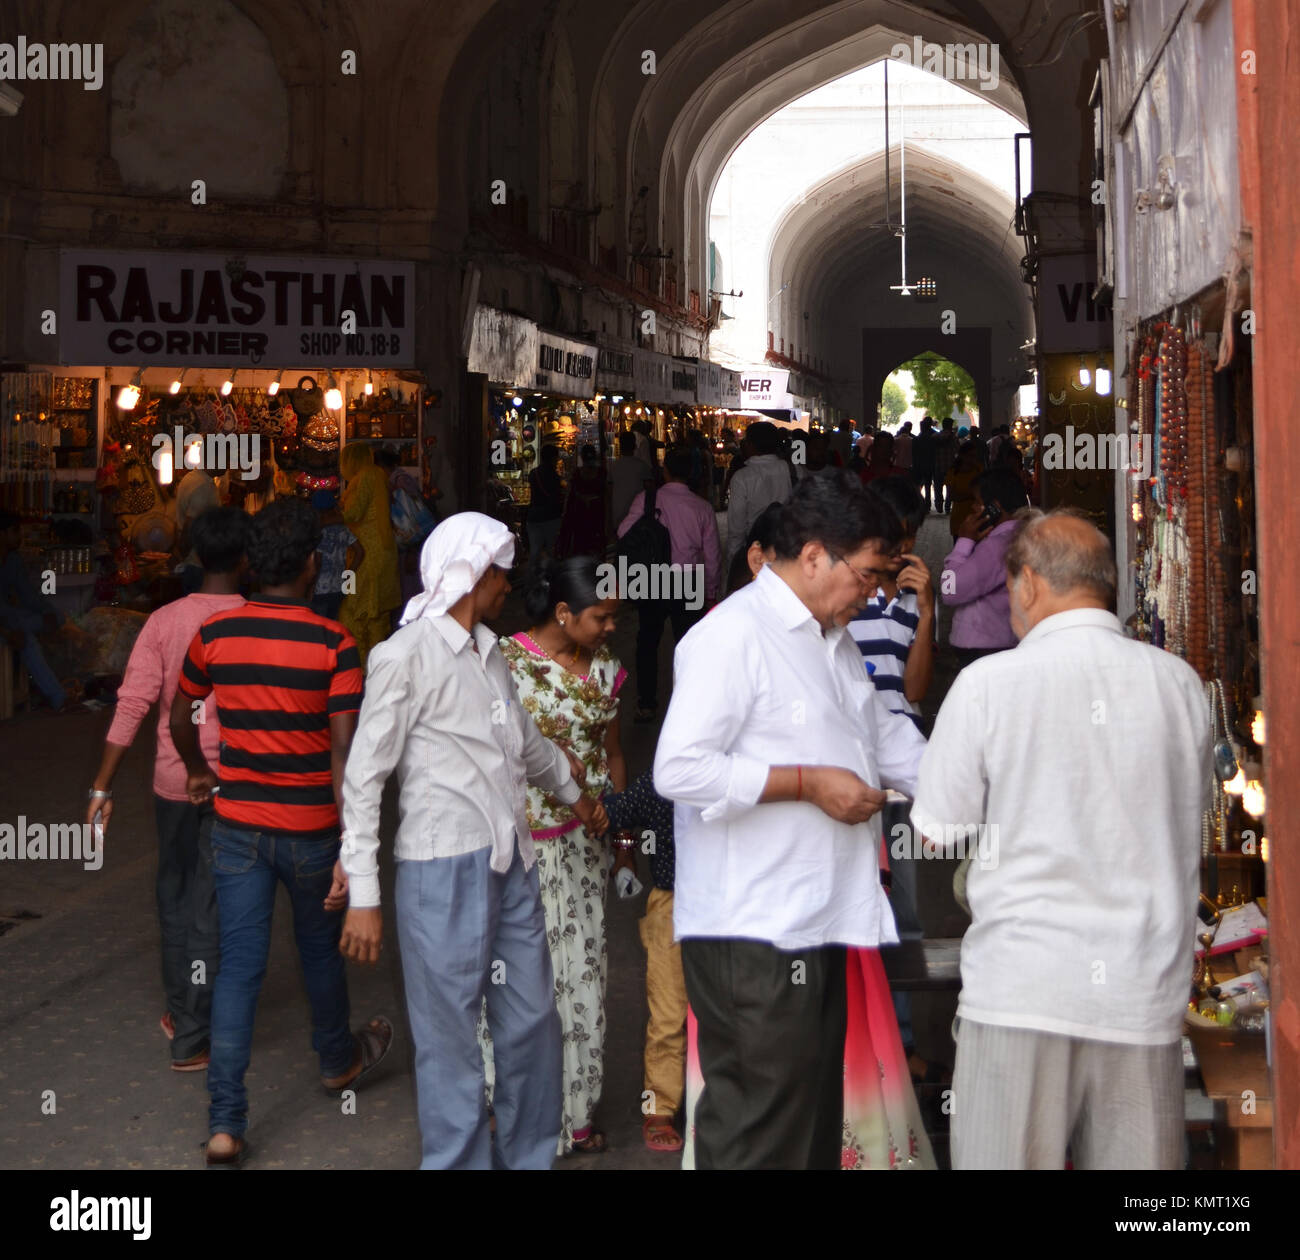 Negotiation, people negotiating a purchase in shopping area inside Red Fort New Delhi India - Stock Image